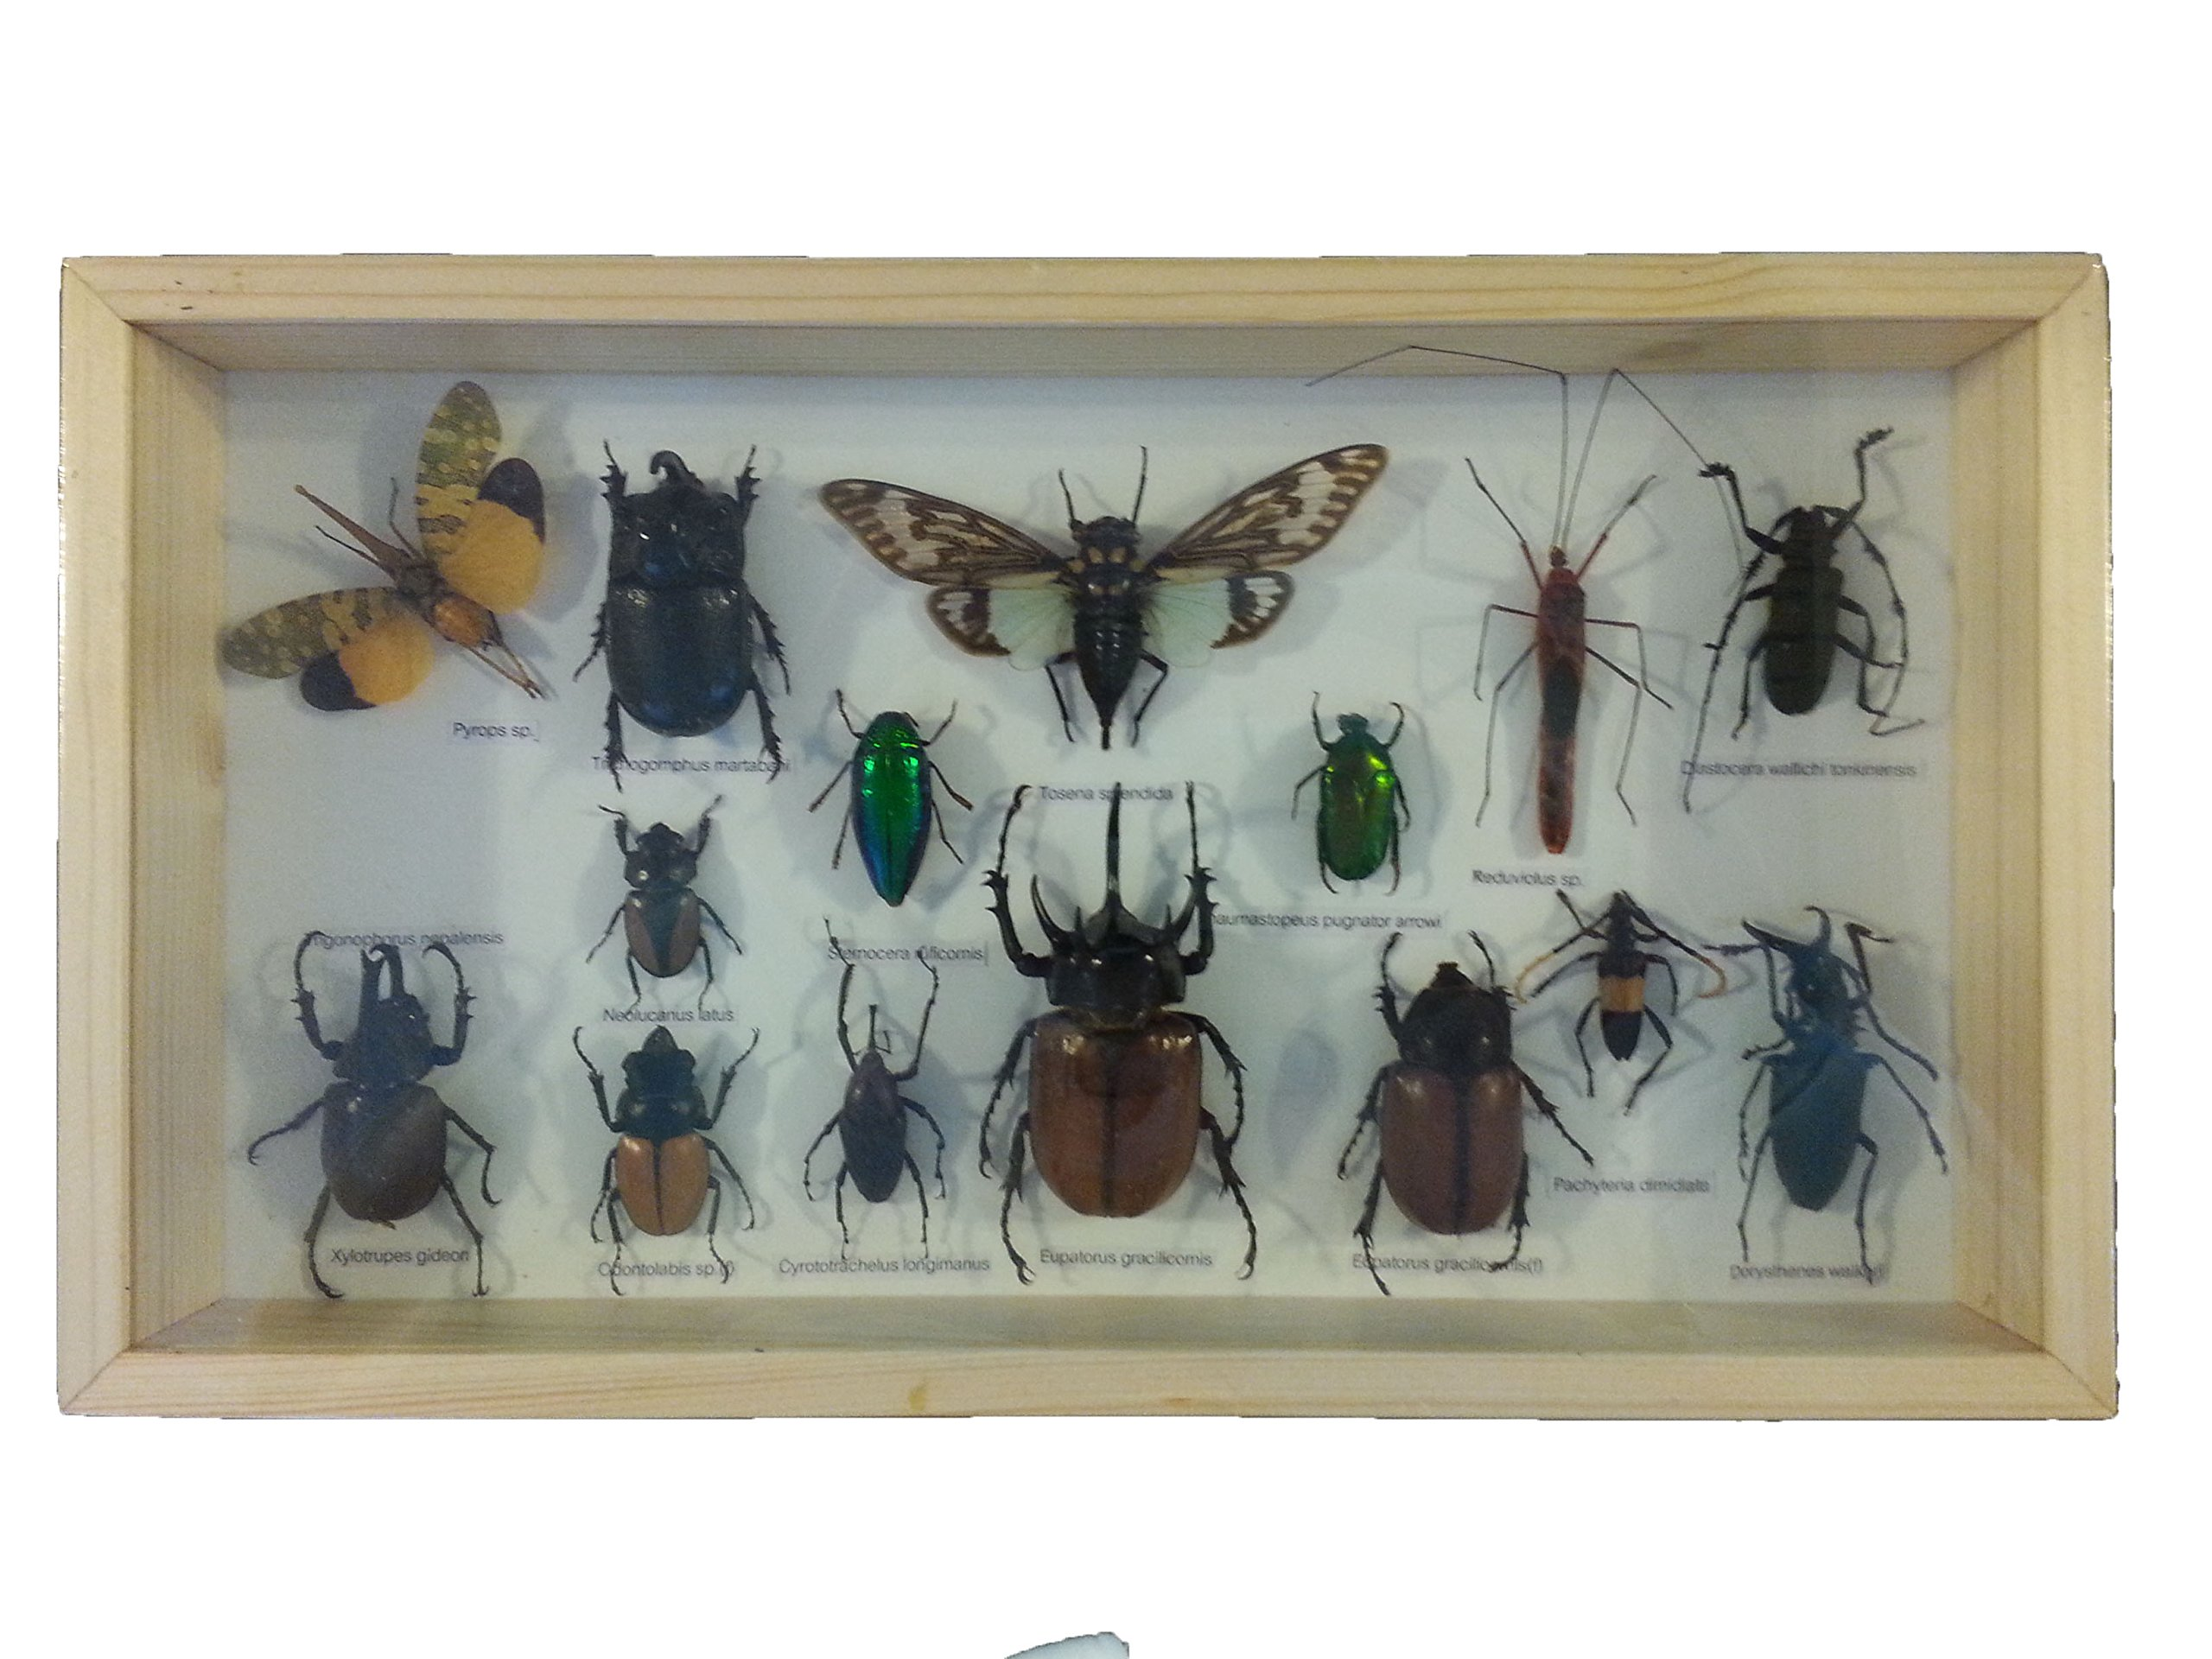 Bunch O'Bugs Insect Specimens - Set In Wood Frame 8x14 Specimens Vary